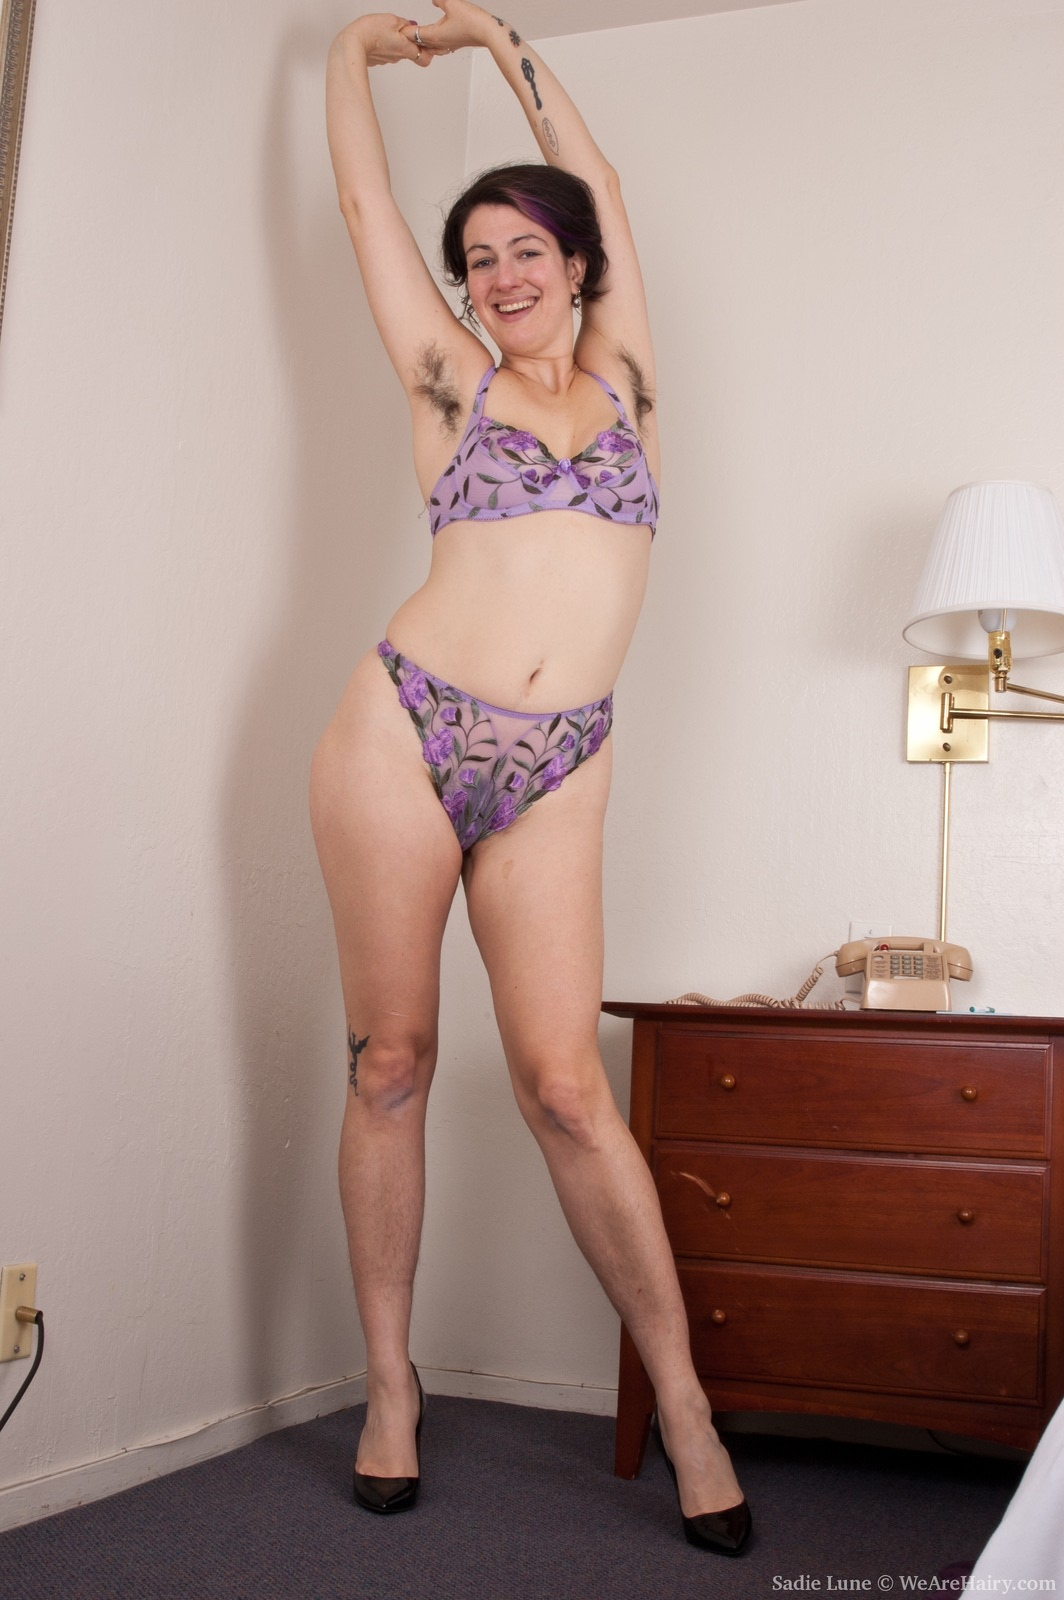 Wara strips naked to show her hairy body off today 1